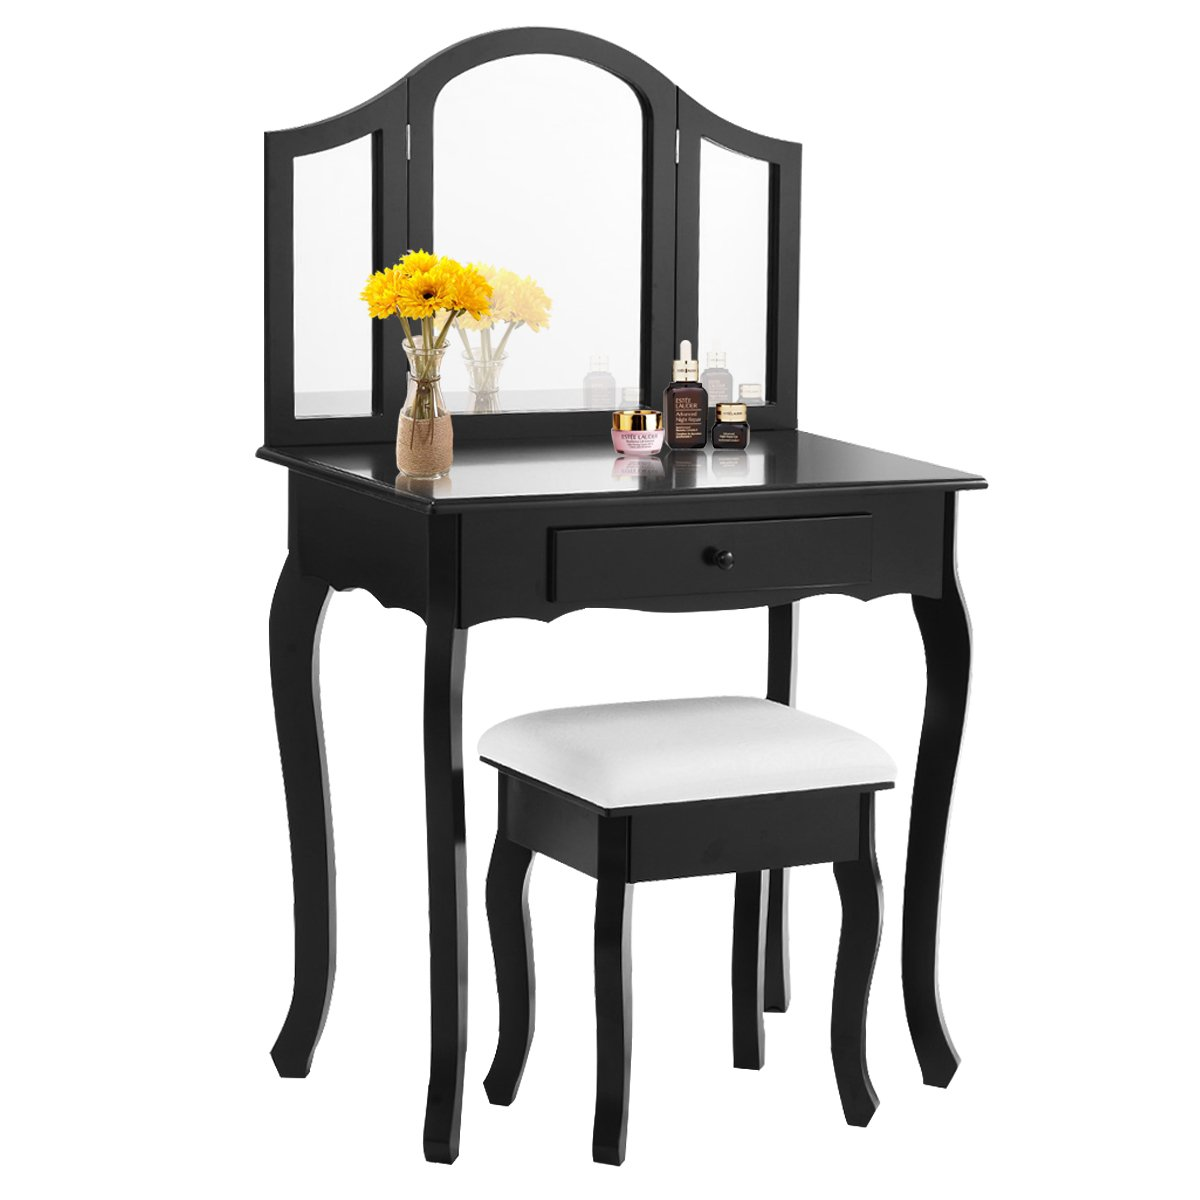 Giantex Bathroom Vanity Makeup Table Set w/Tri-folding Mirror & Cushioned Stool Dressing Table (Black)